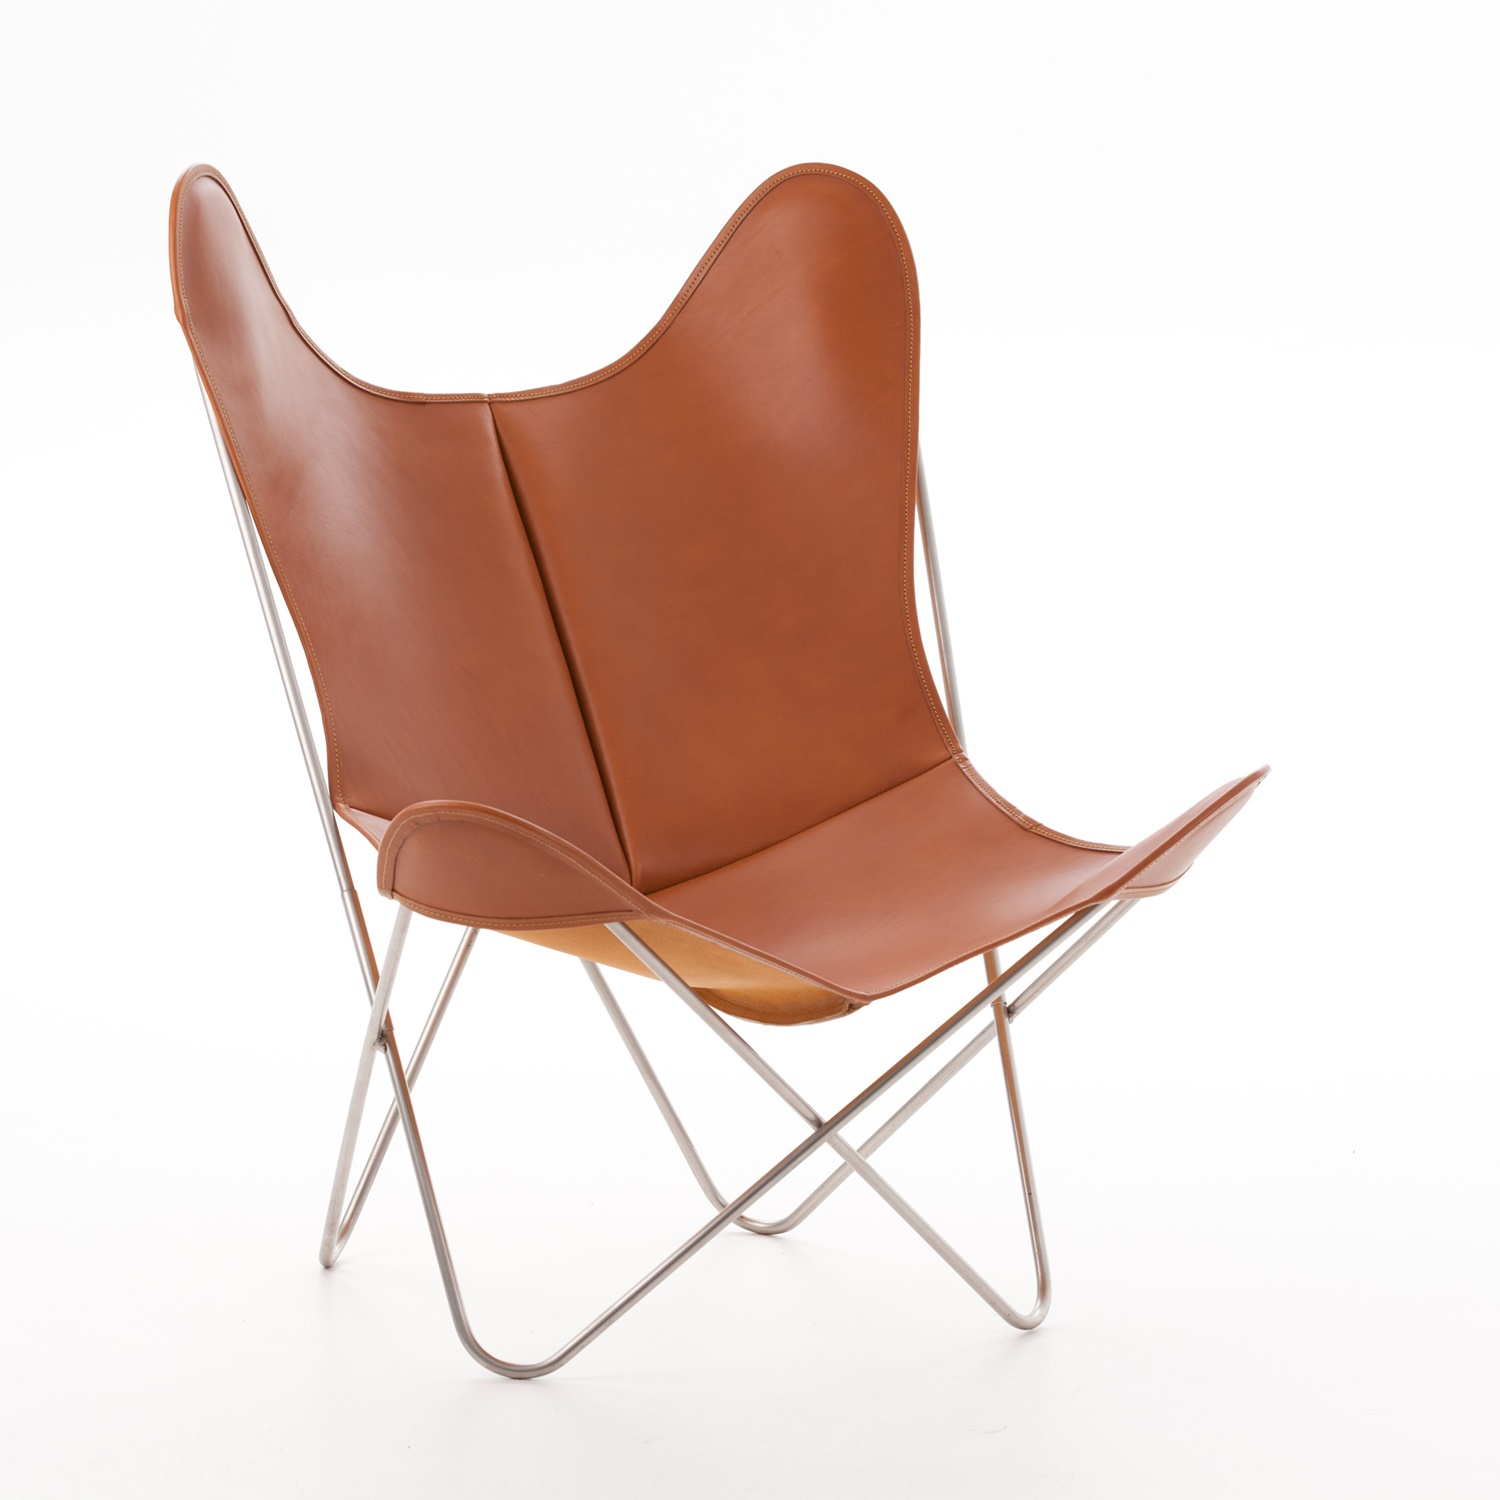 Butterfly Sessel Aa By Airborne Butterfly Chair Fauve Leder